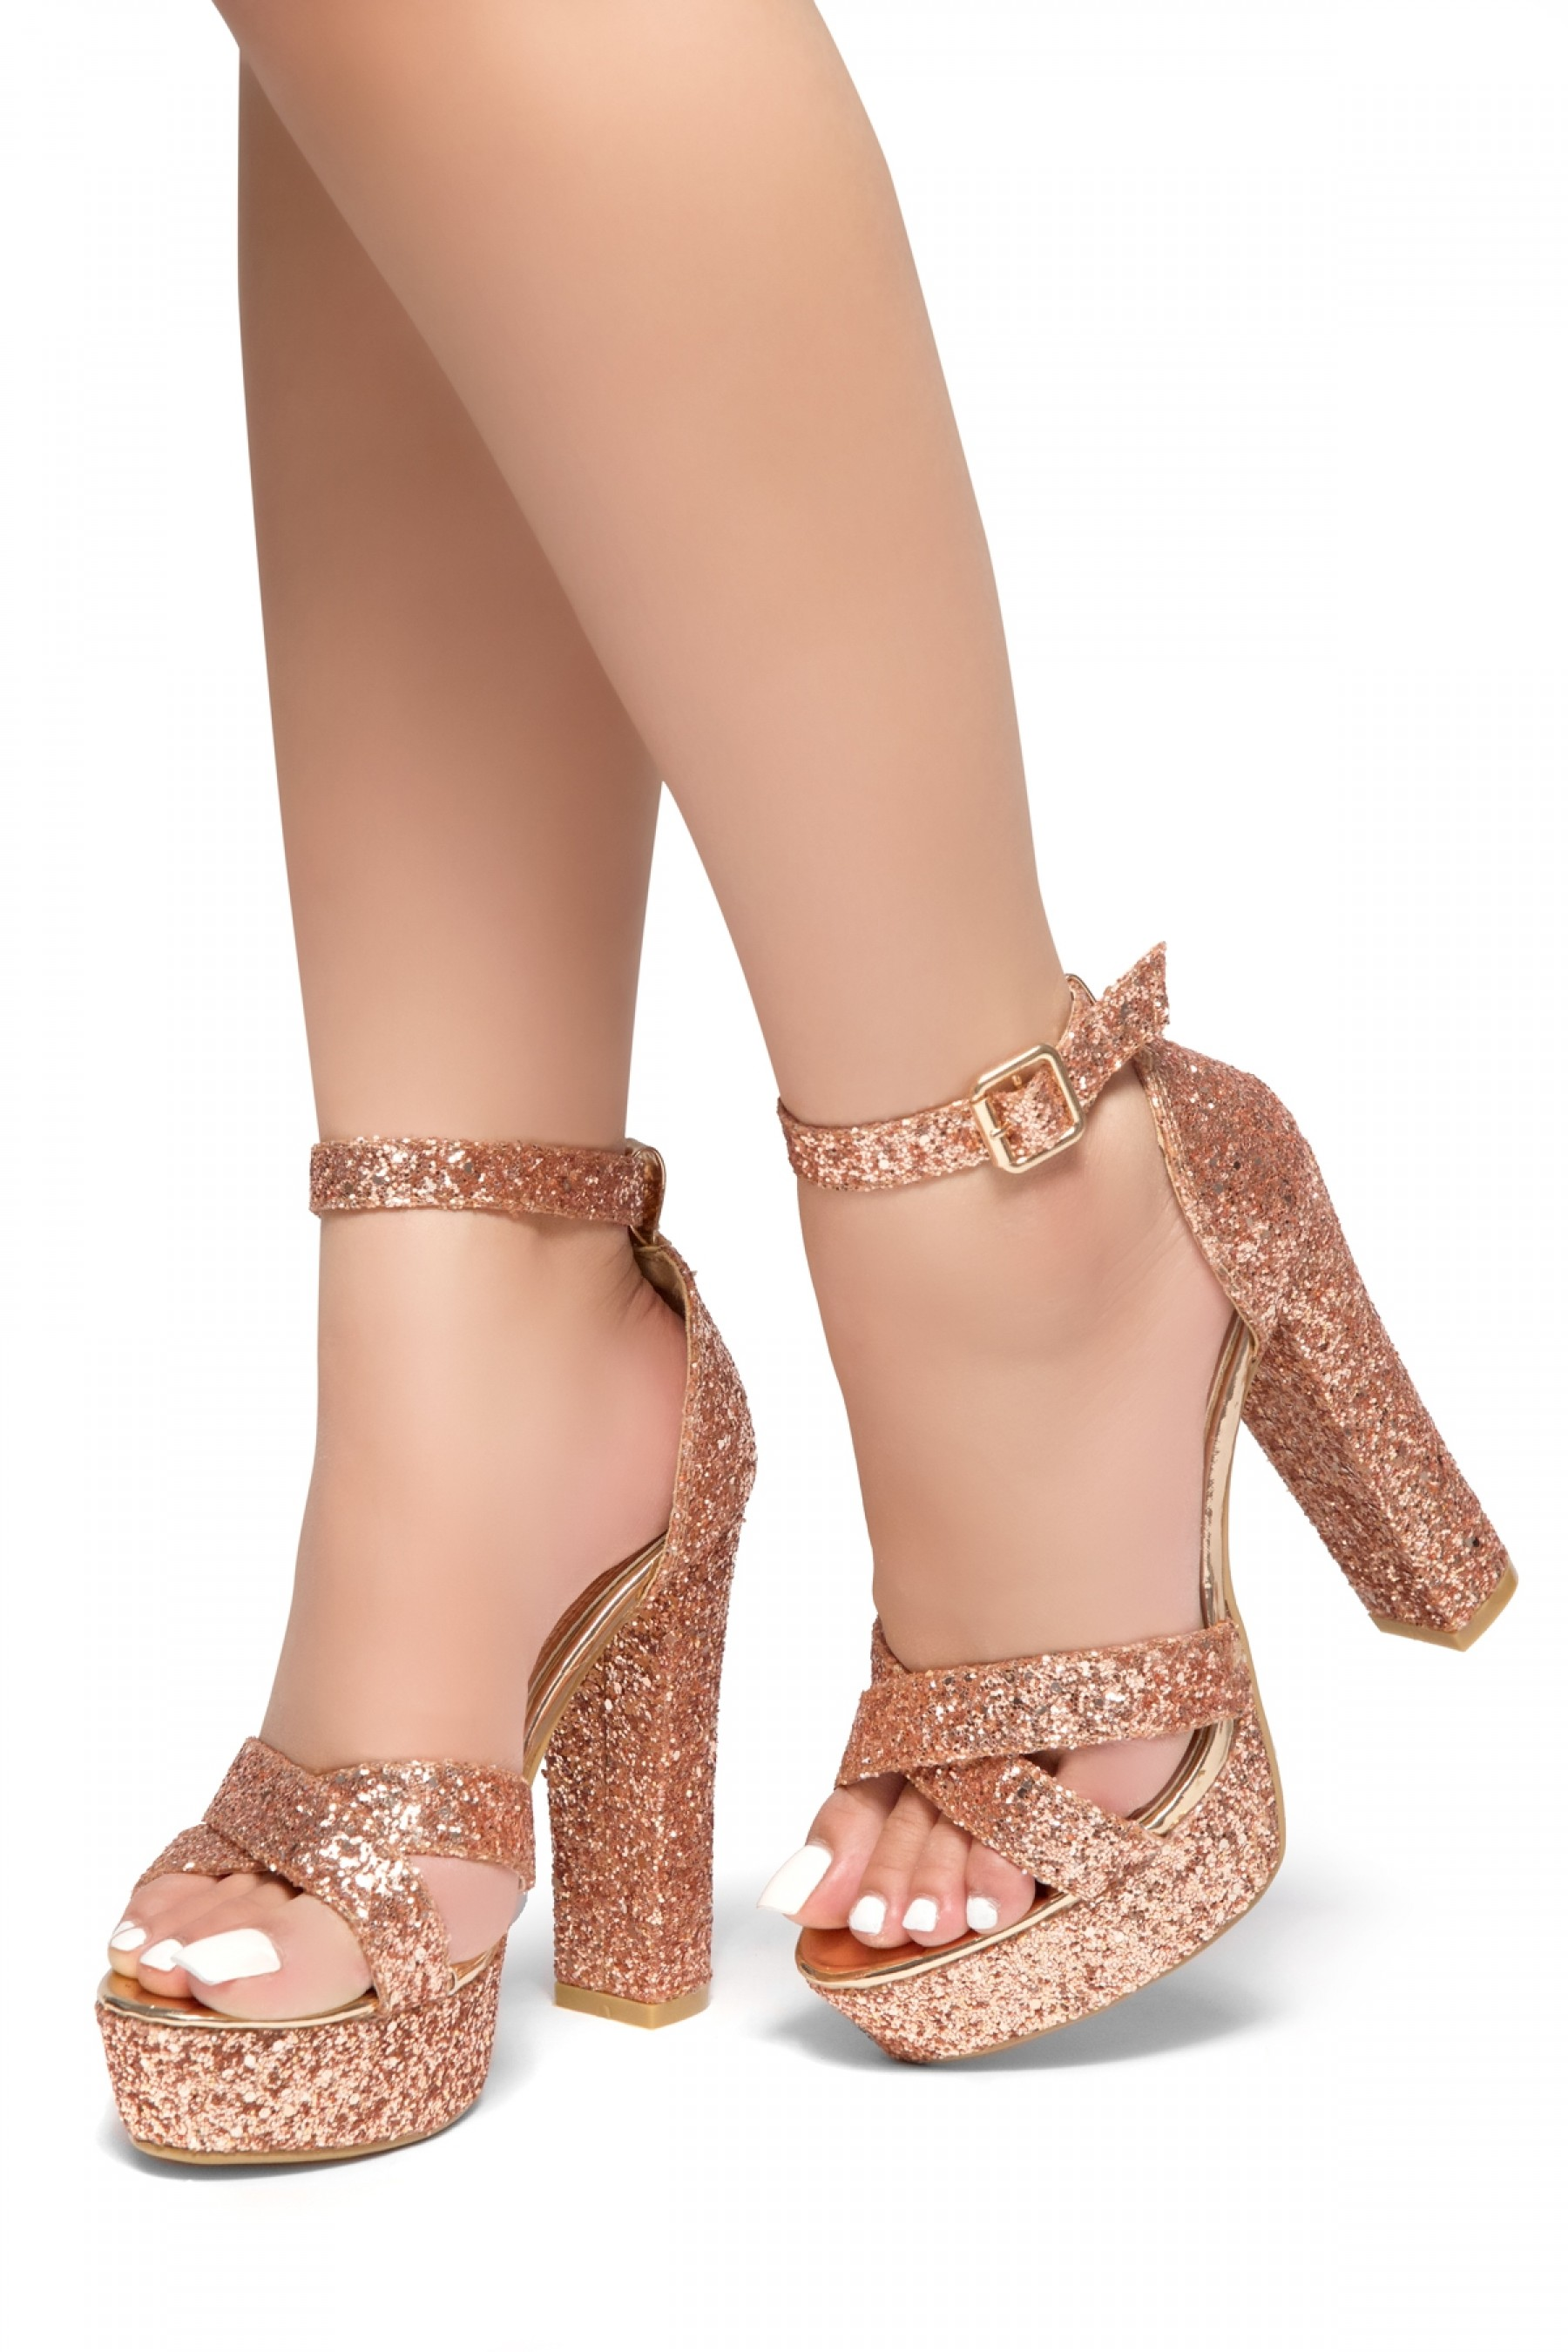 a92145563ae HerStyle PLAY DATE-Glitter with platform sandals (RoseGold Glitter)